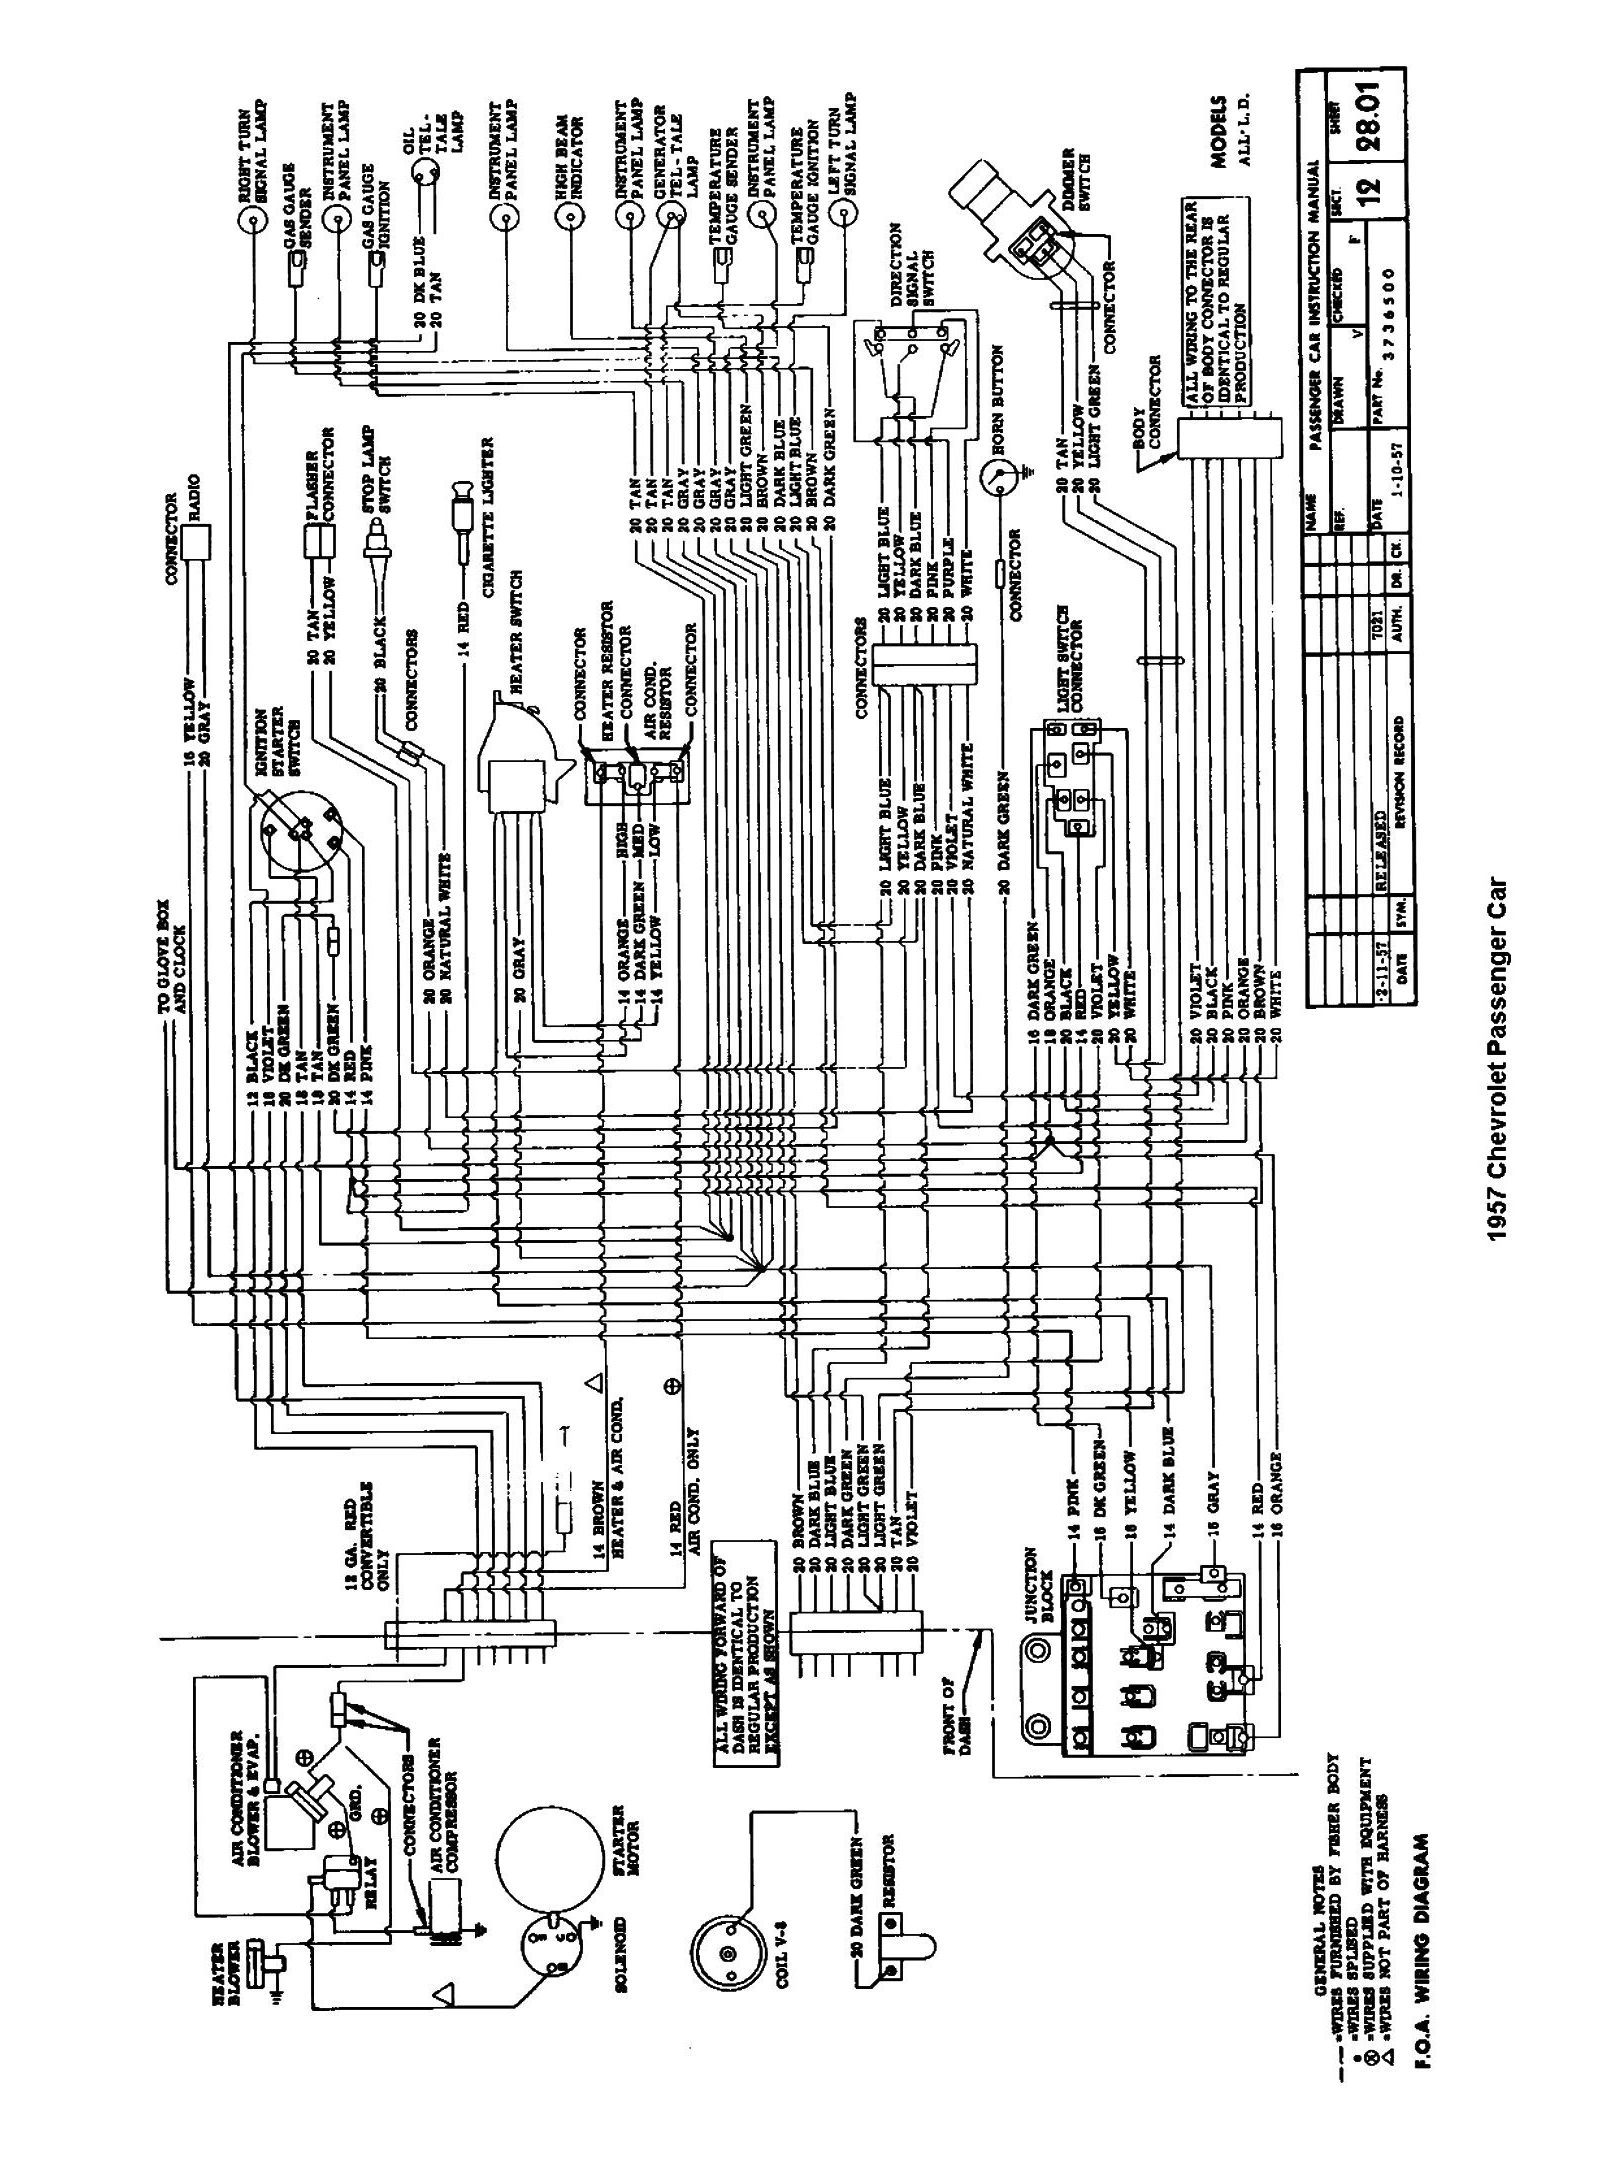 79 corvette wiring diagram cigarette lighter schematics wiring rh ssl forum  com 1980 Corvette Wiring Schematic 81 Corvette Wiring Diagram